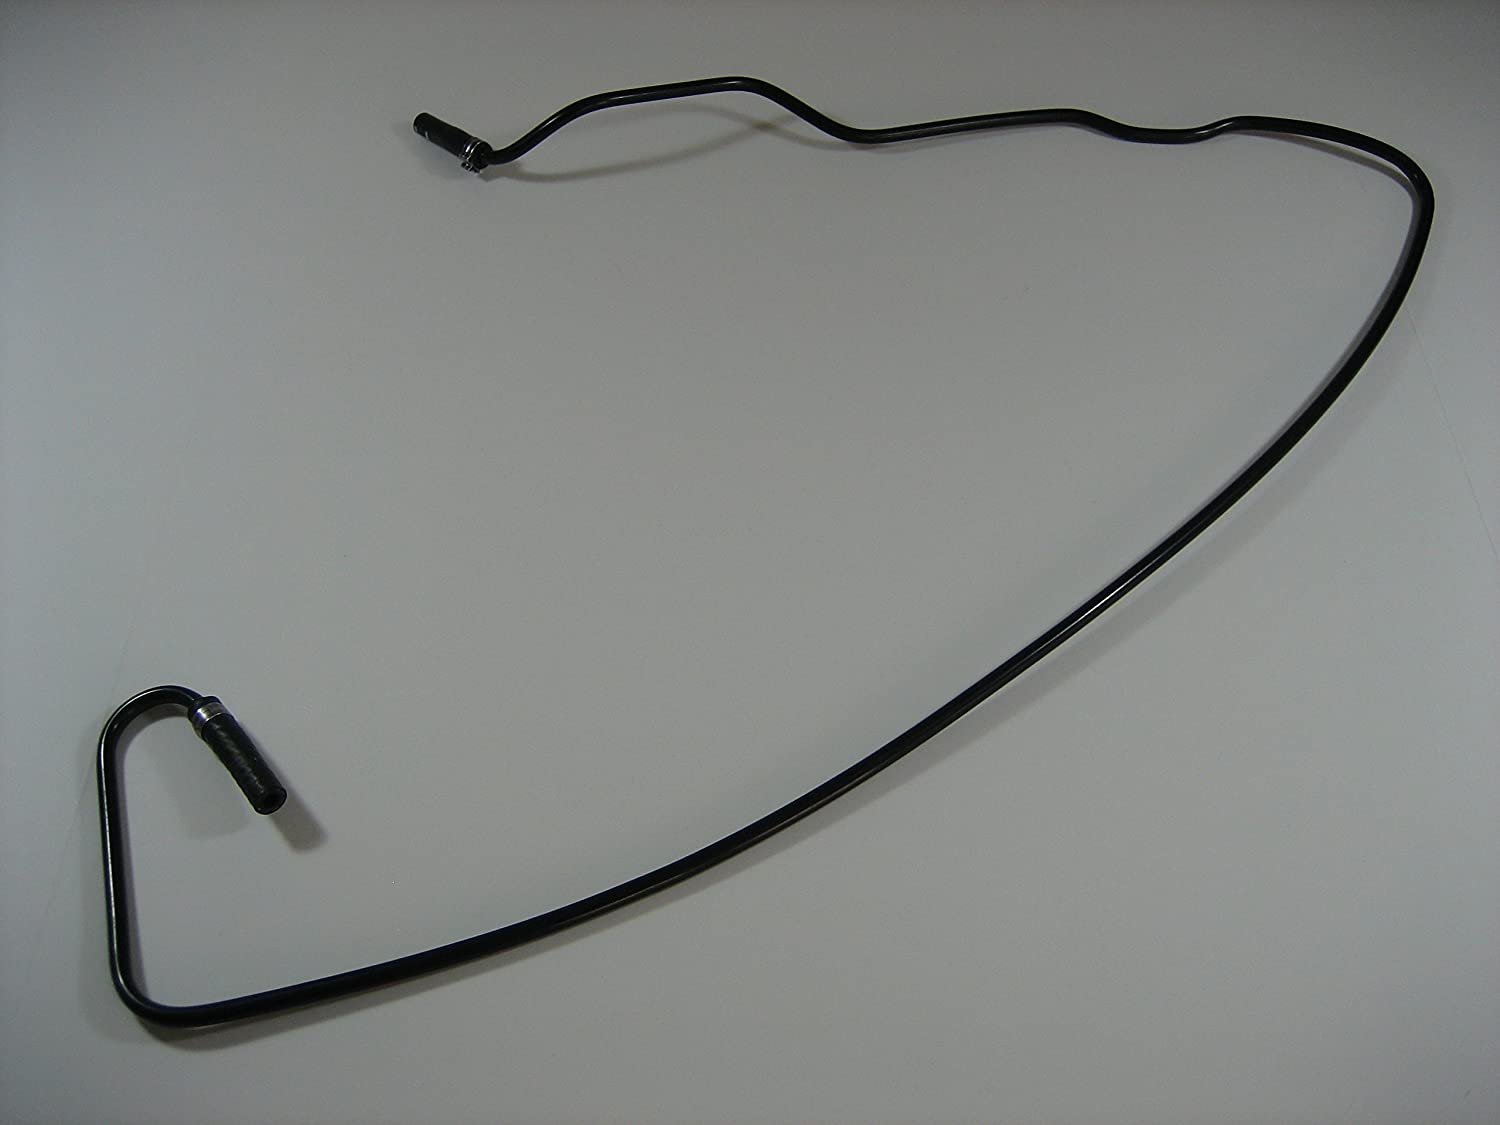 Genuine Land Rover Discovery II Expansion Tank to Radiator Coolant Line